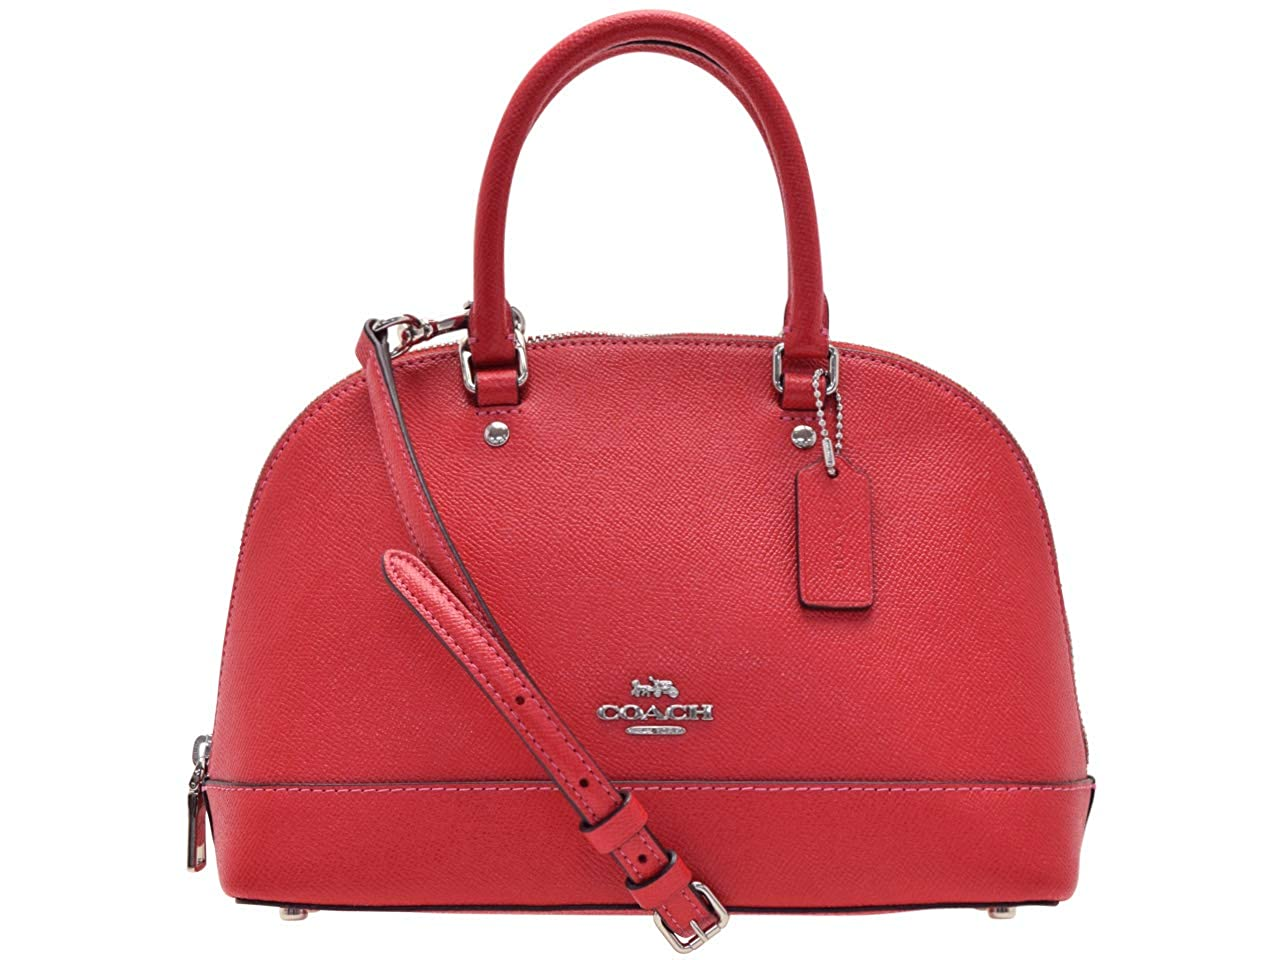 6e005b1e1086 Details about NWT COACH Leather Mini Sierra Satchel Crossbody Bag Purse  F27591 BRIGHT RED